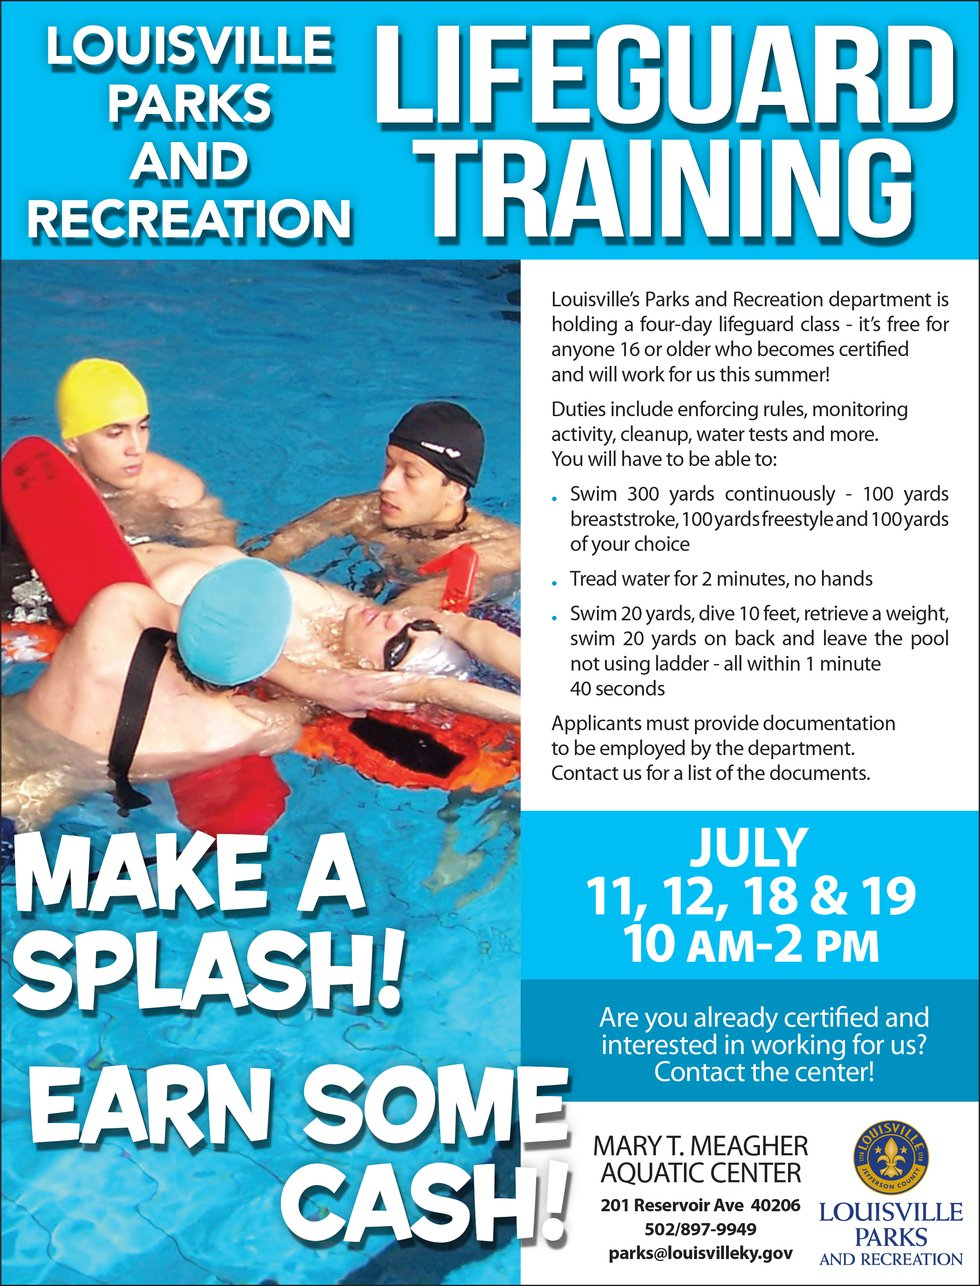 Lifeguards are needed for local pools in Louisville this summer.